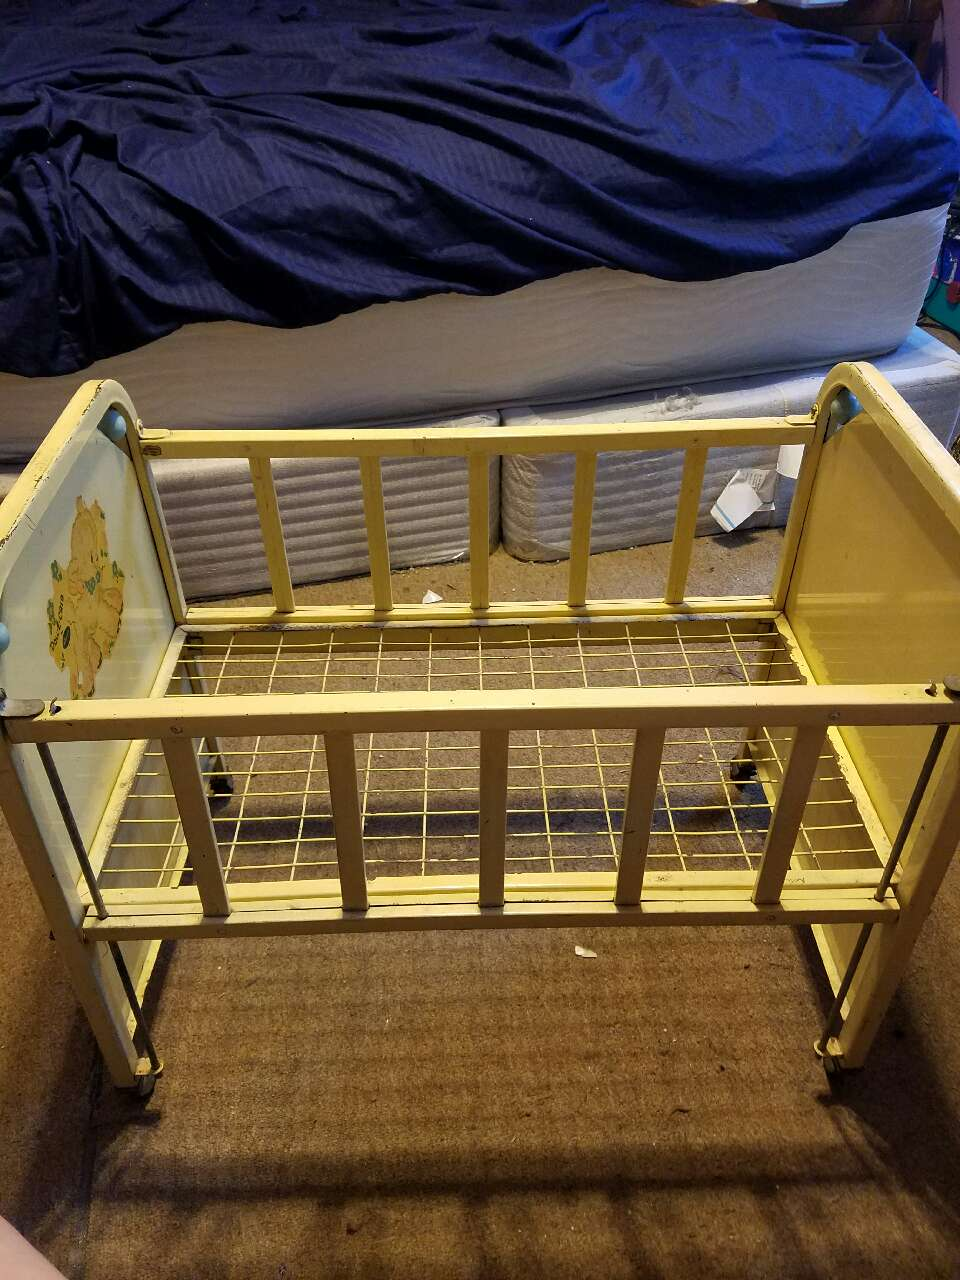 Used crib for sale in nj - Doll Cribhelmetta Nj